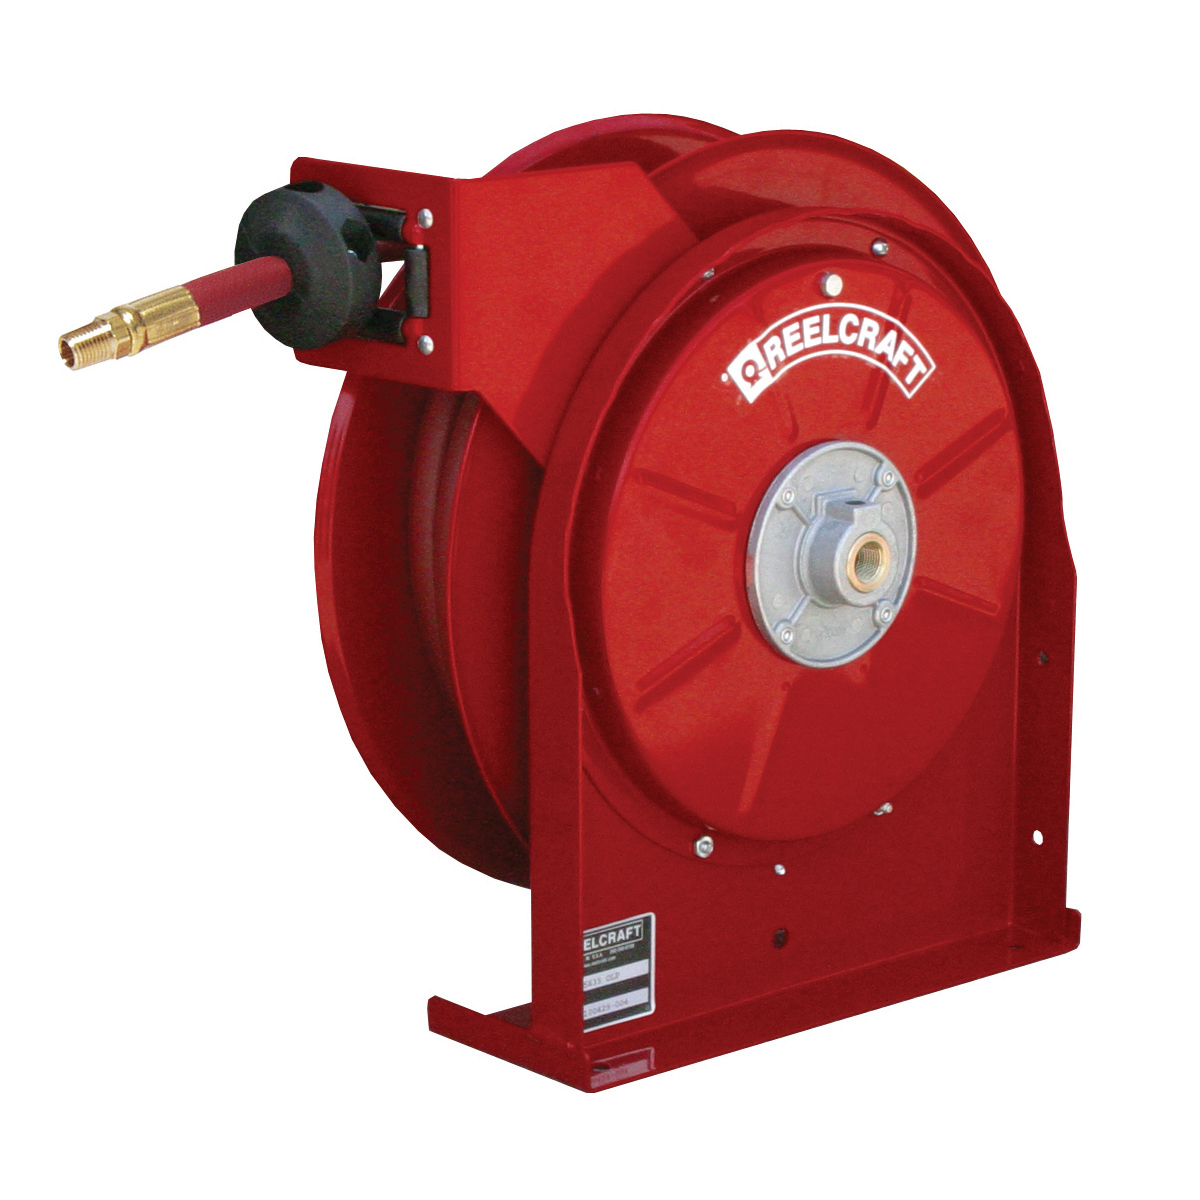 Reelcraft® 4625 OLPSW5 4000 Pre-Rinse Crafted Hose Reel With Hose, 3/8 in ID x 16/25 in OD x 25 ft L Hose, 250 psi Pressure, 12-3/8 in Dia x 2-1/2 in W Reel, Domestic